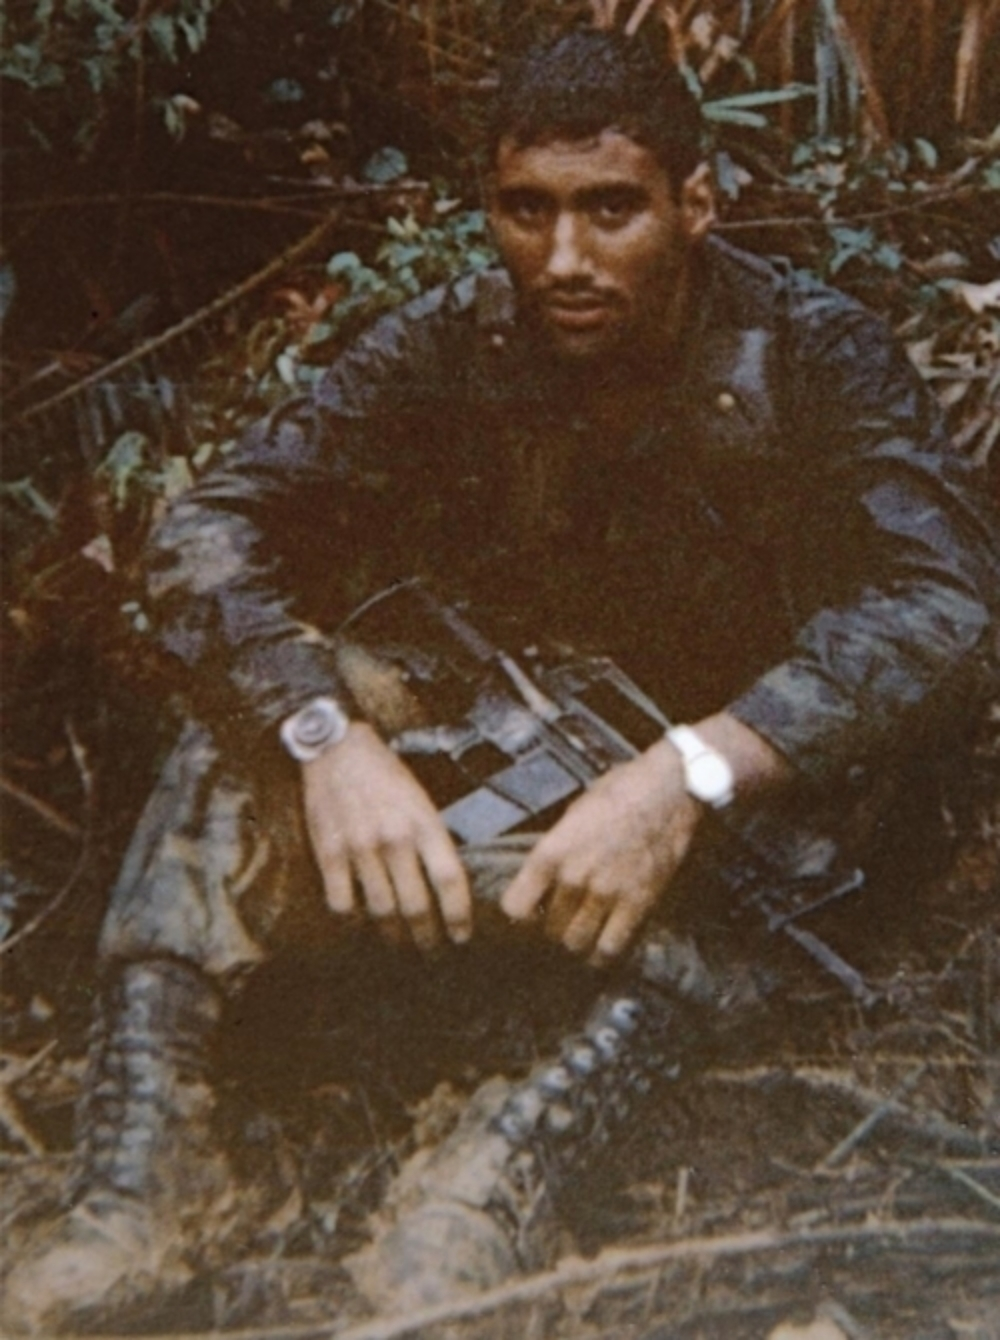 Sgt Robert Ankony, Wednesday, September 4, 1968